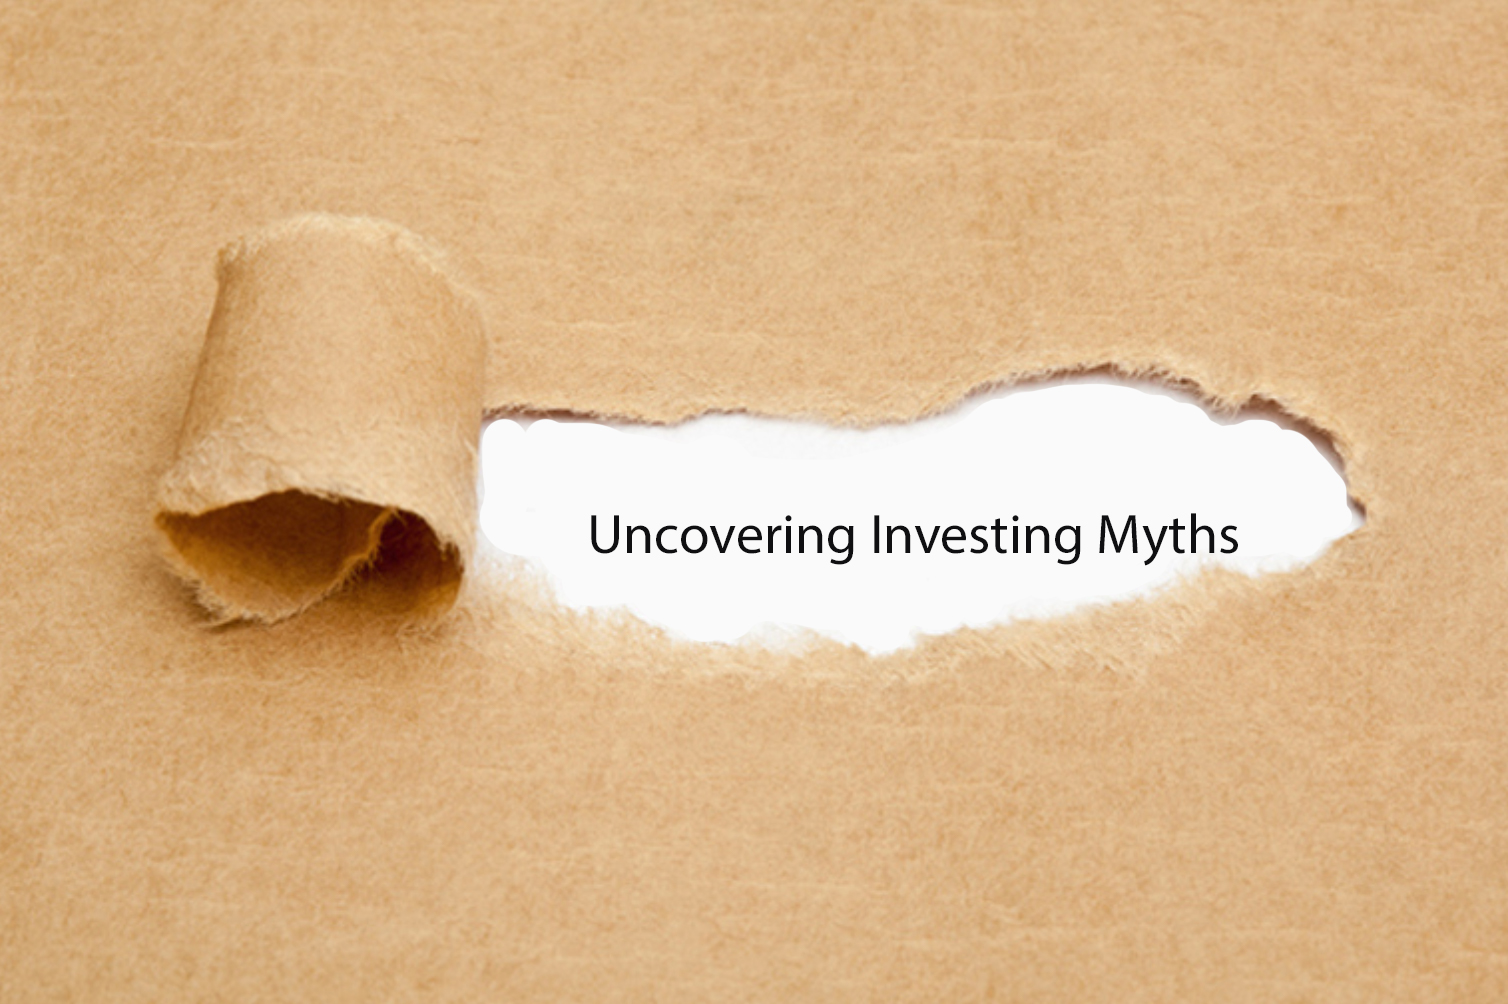 """Myth #1: The greater the risk, the higher the return. """"No pain, no gain,"""" said Jane Fonda in one of her exercise videos. Somehow, the investment world has been an ardent student of Jane's advice on workout regime. Today, it seems that the """"obvious"""" relationship between risk and reward is hardly worth the mention. But the focus should be on the relationship between effort and return. That is, the more effort you put into analyzing companies and understanding their financial statements, the more likely you will be able to understand the truth behind their reported earnings. And more importantly, to value their business."""